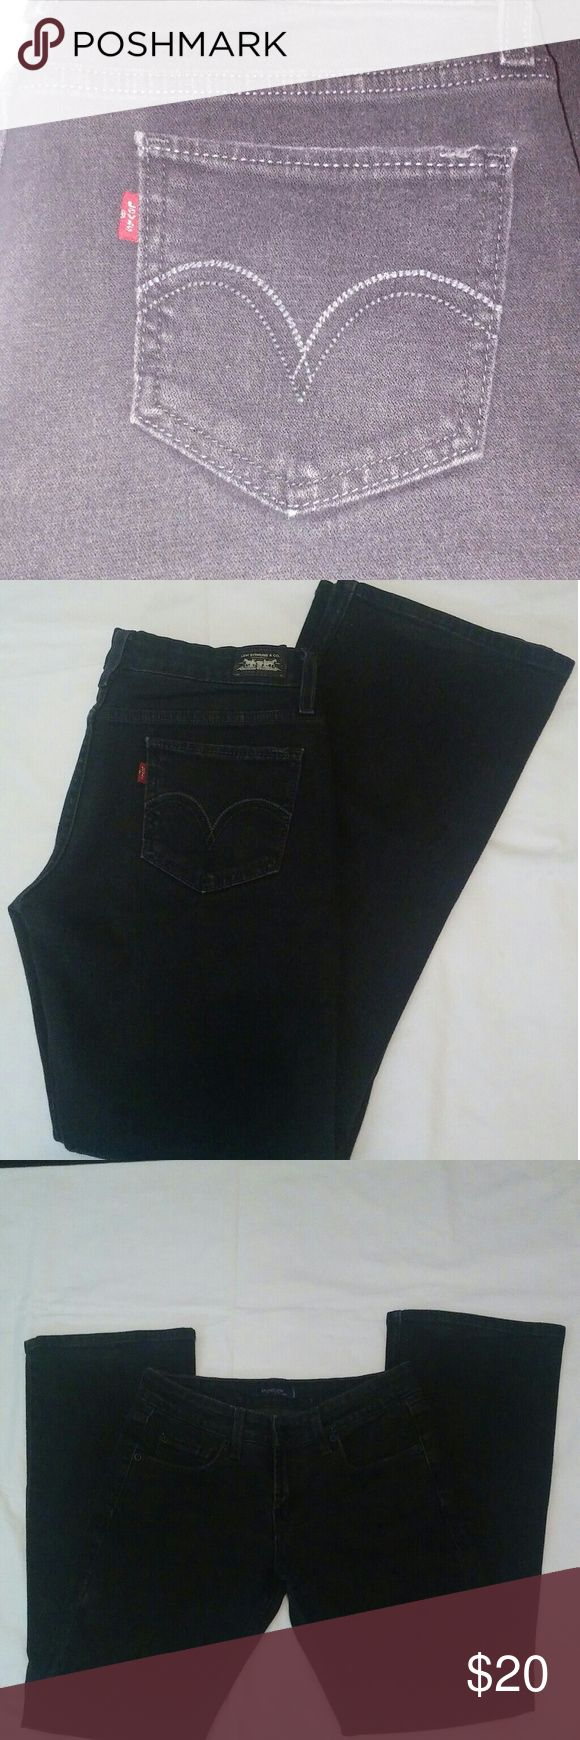 Black Levi's 518 Superlow Rise Jeans, Size 7 Boot cut, stretchy, not faded, only wore twice Levi's Jeans Boot Cut